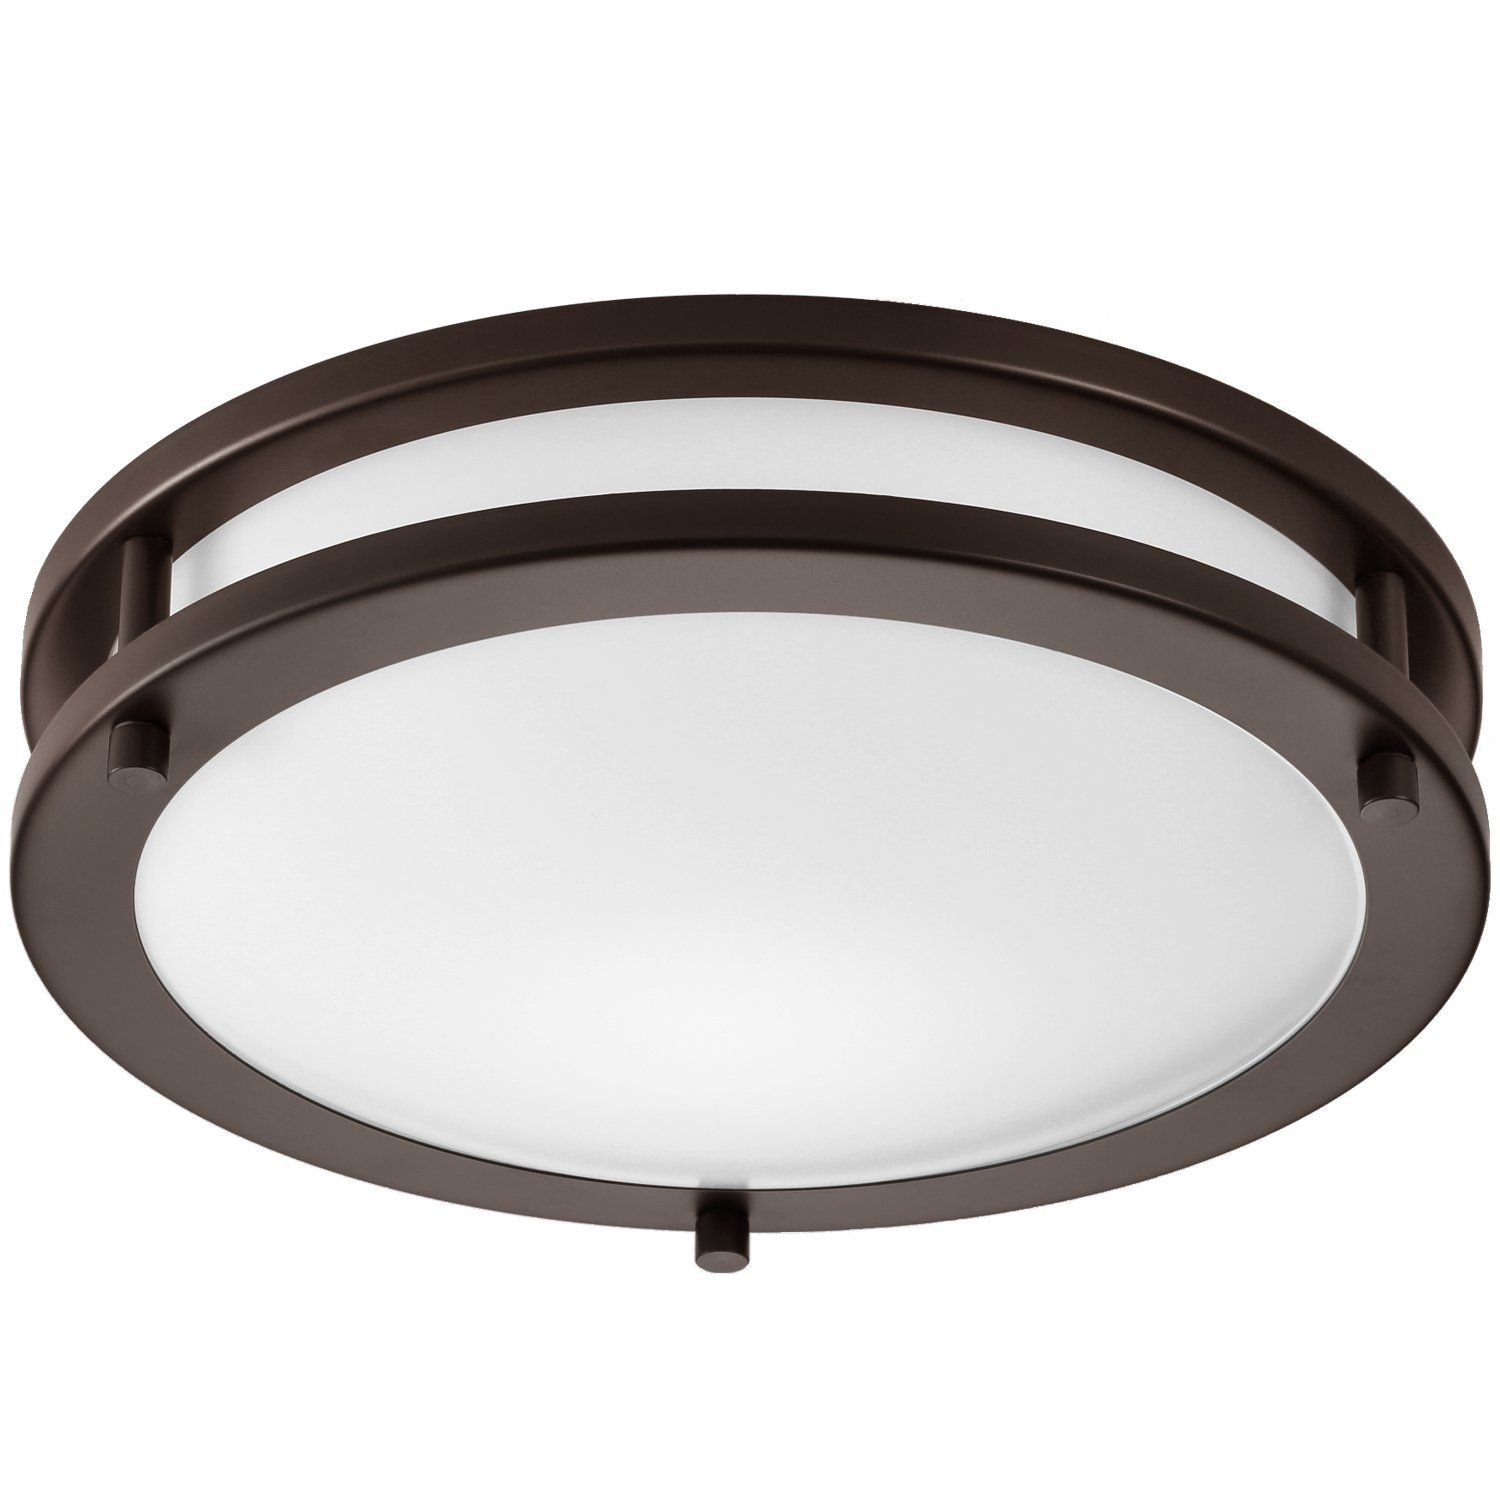 Getinlight Led Flush Mount Ceiling Light 12 Inch 15w 75w Equivalent Bronze Finish 4000k Bright W Flush Mount Ceiling Lights Ceiling Lights Led Flush Mount